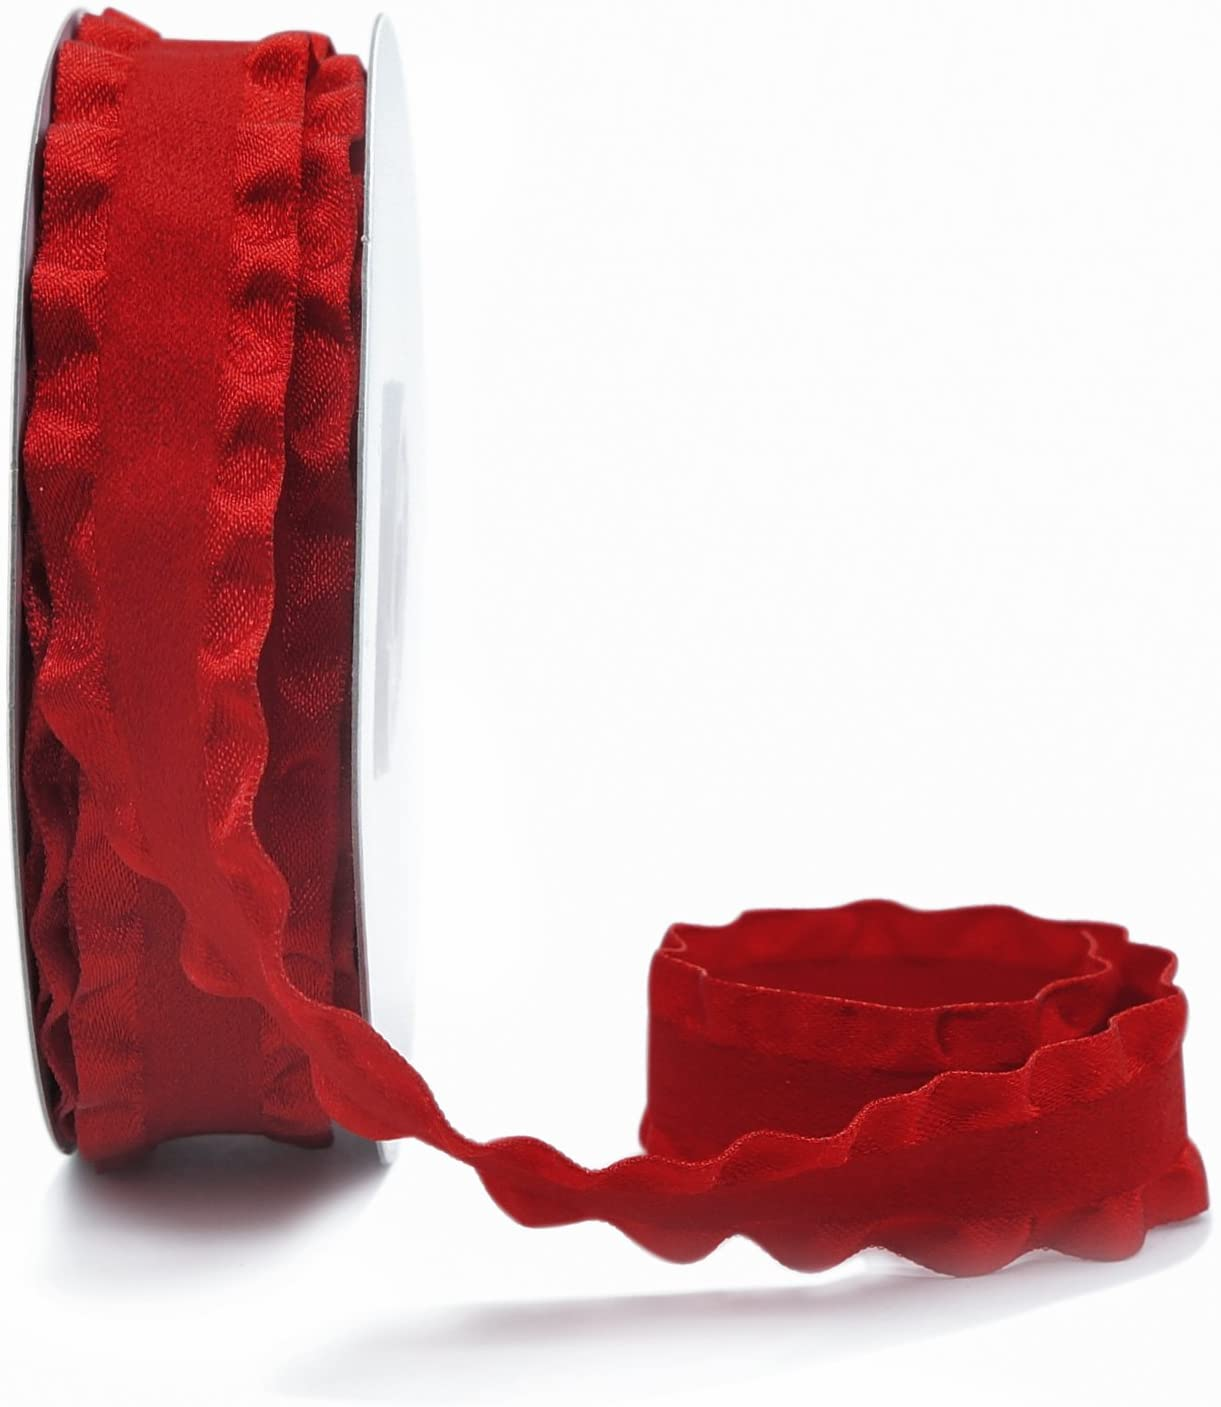 CT CRAFT LLC Double Ruffle Ribbon Suede (20 mm x 10 Yards) Red for Home Decor, Wrapping Gifts & Custom DIY Crafts Decorative